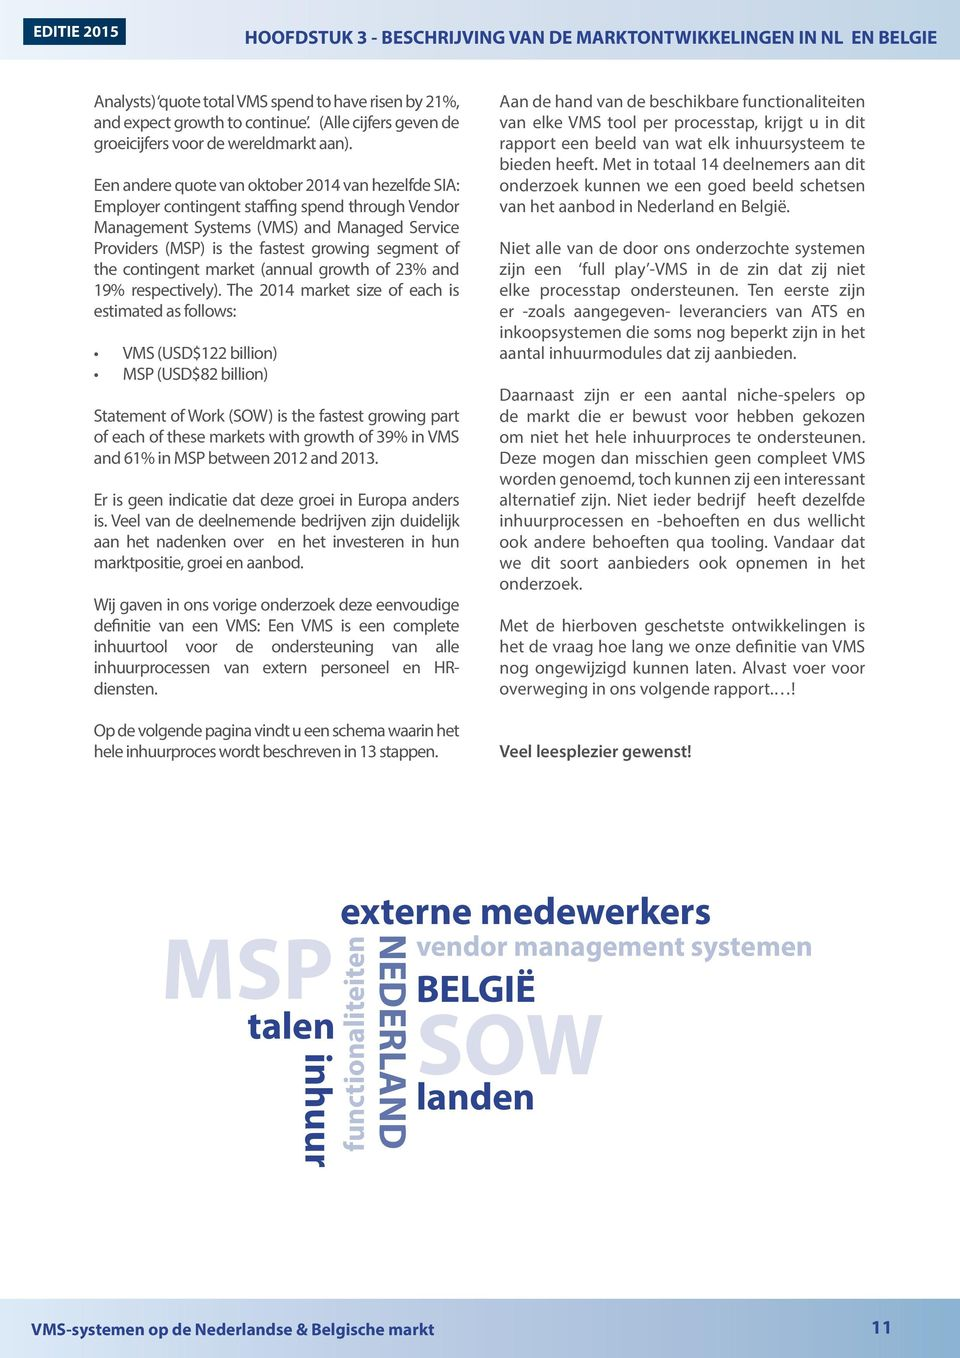 Een andere quote van oktober van hezelfde SIA: Employer contingent staffing spend through Vendor Management Systems (VMS) and Managed Service Providers (MSP) is the fastest growing segment of the